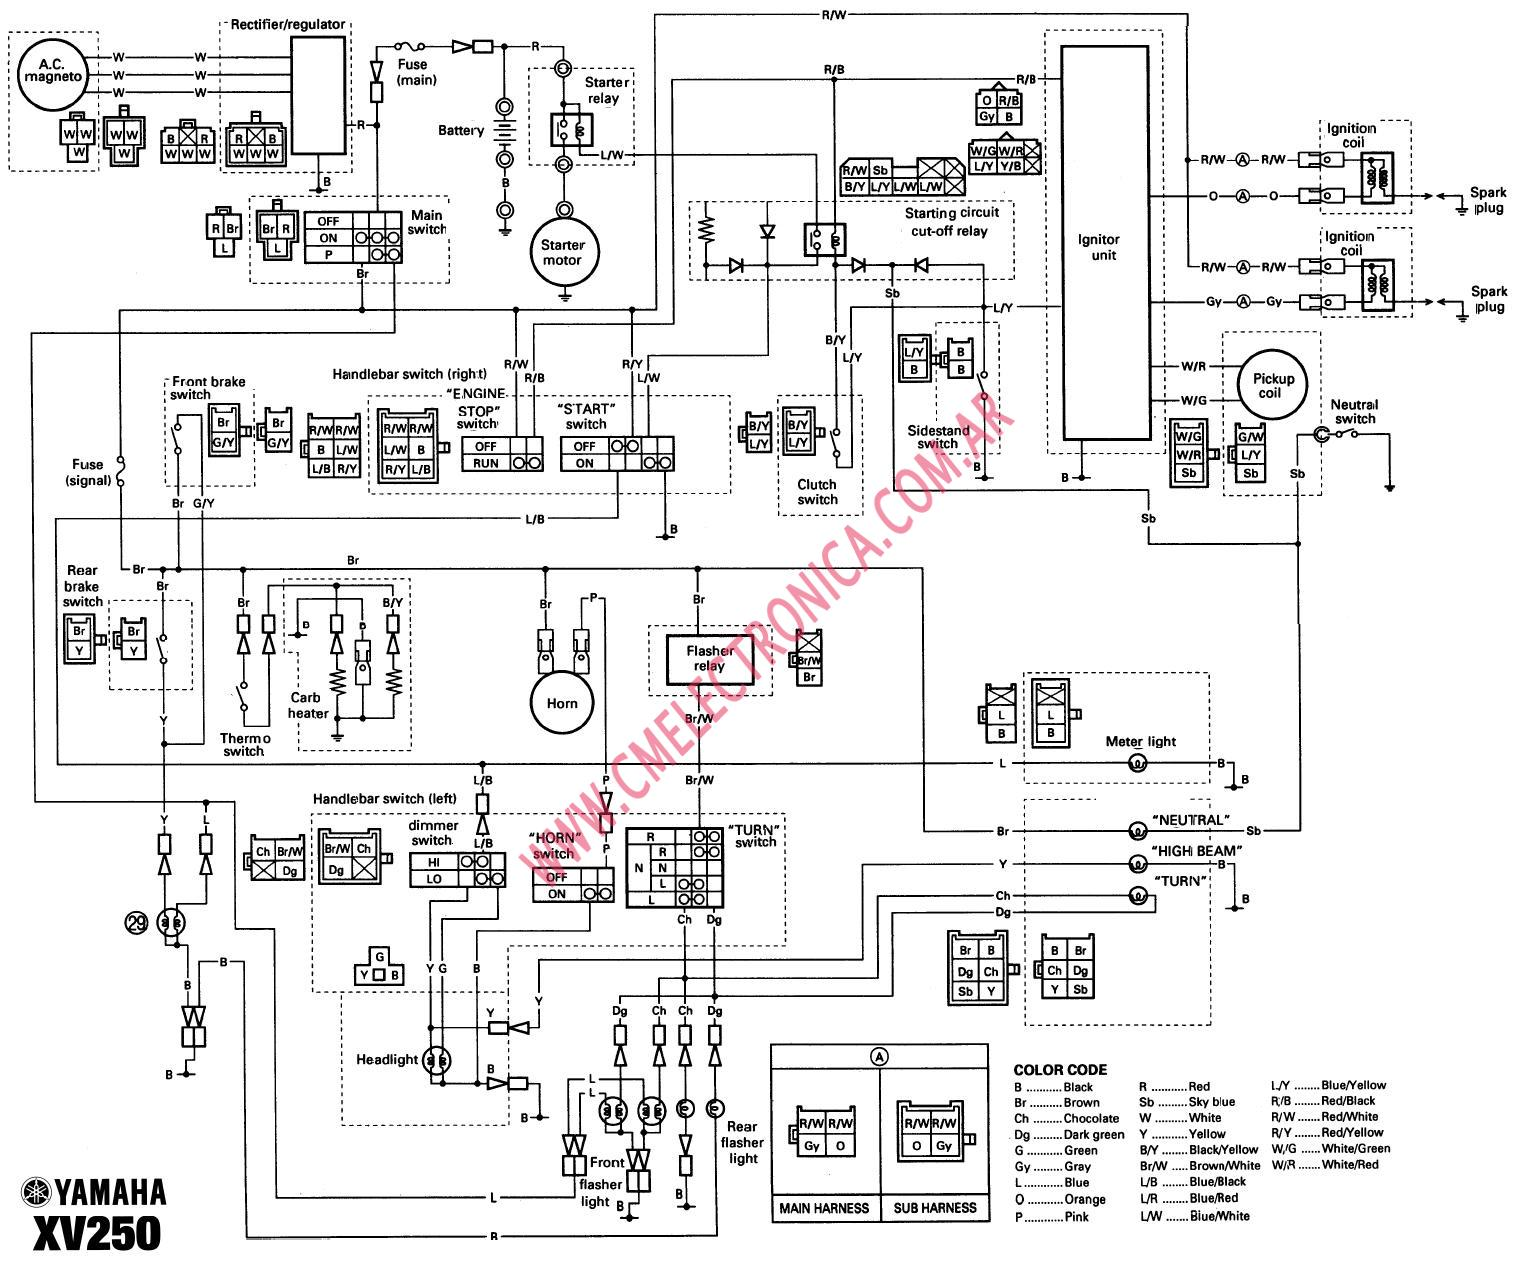 Wiring Diagram Of Suzuki Raider J